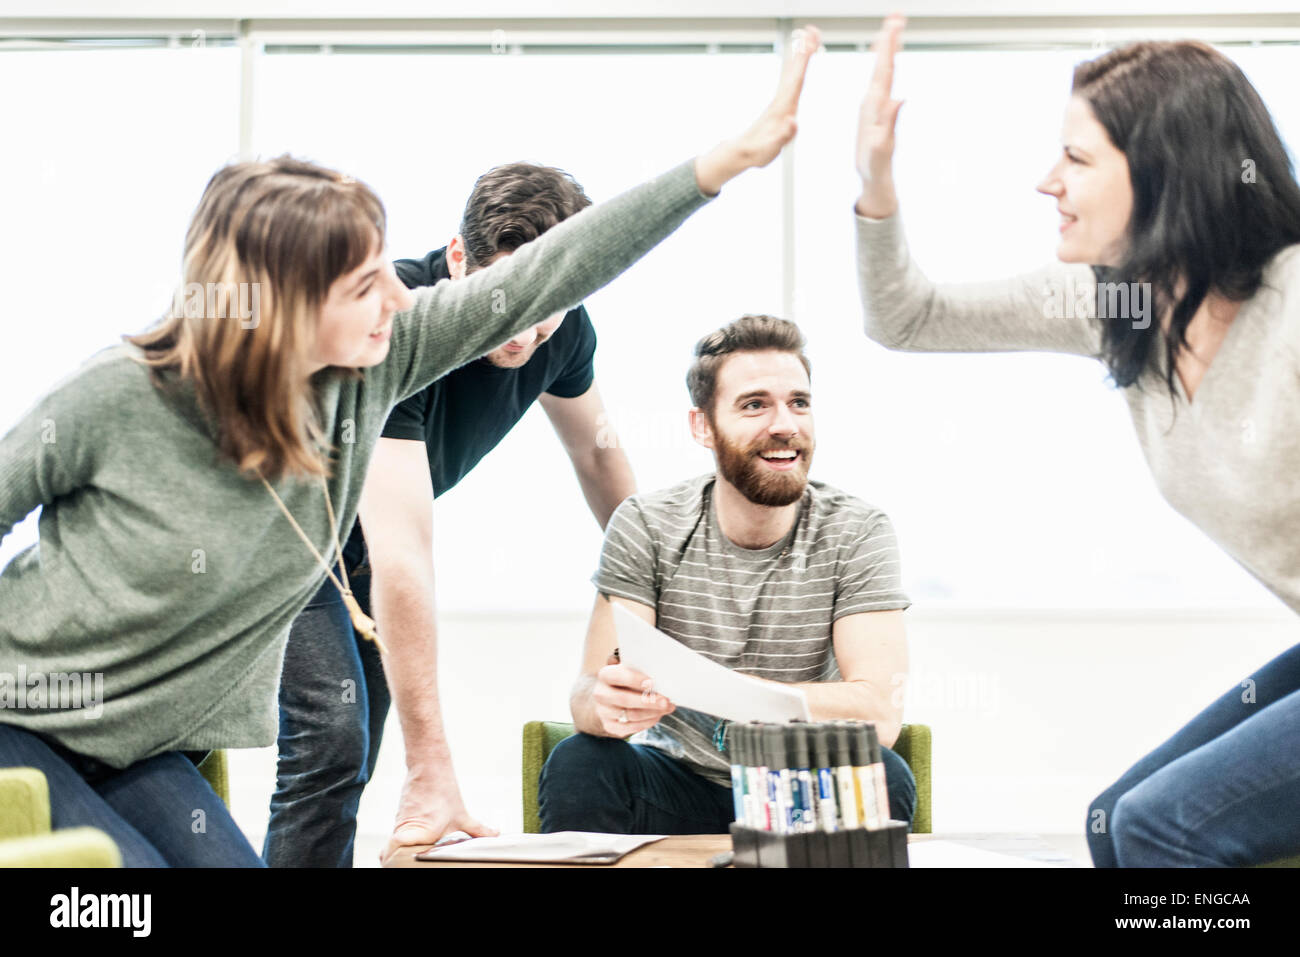 Four people seated at a table, colleagues at a planning meeting high fiveing each other. - Stock Image